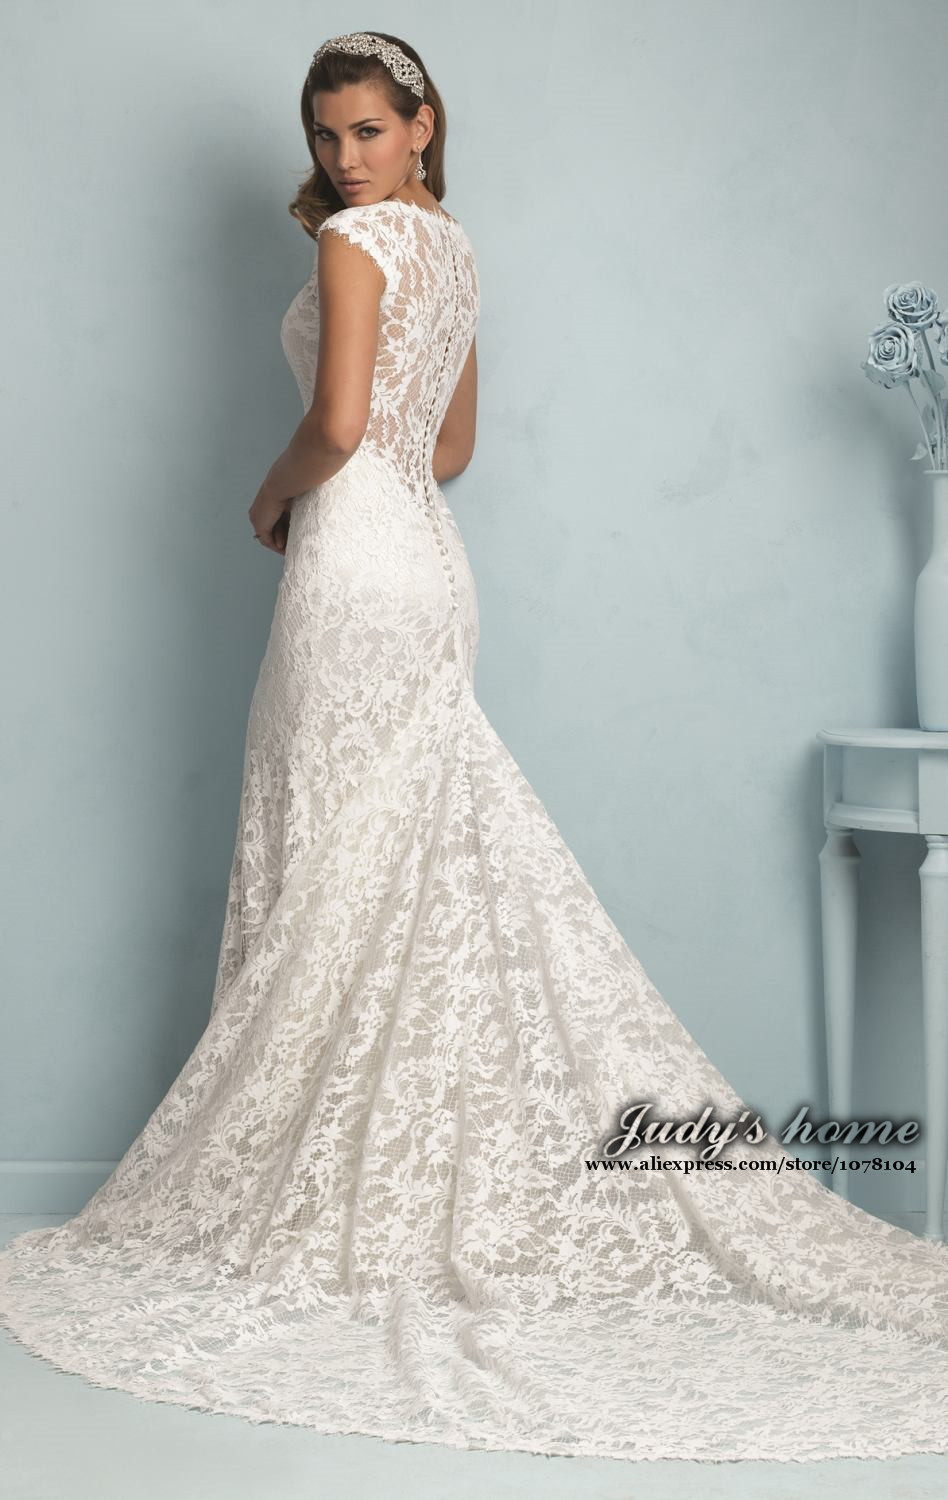 sheer lace back wedding gown sheer lace wedding dress Style Satin Aline With A Vneckline And Dropped Waist Bodice Amzing Spring Backless Sheer Lace Wedding Dresses